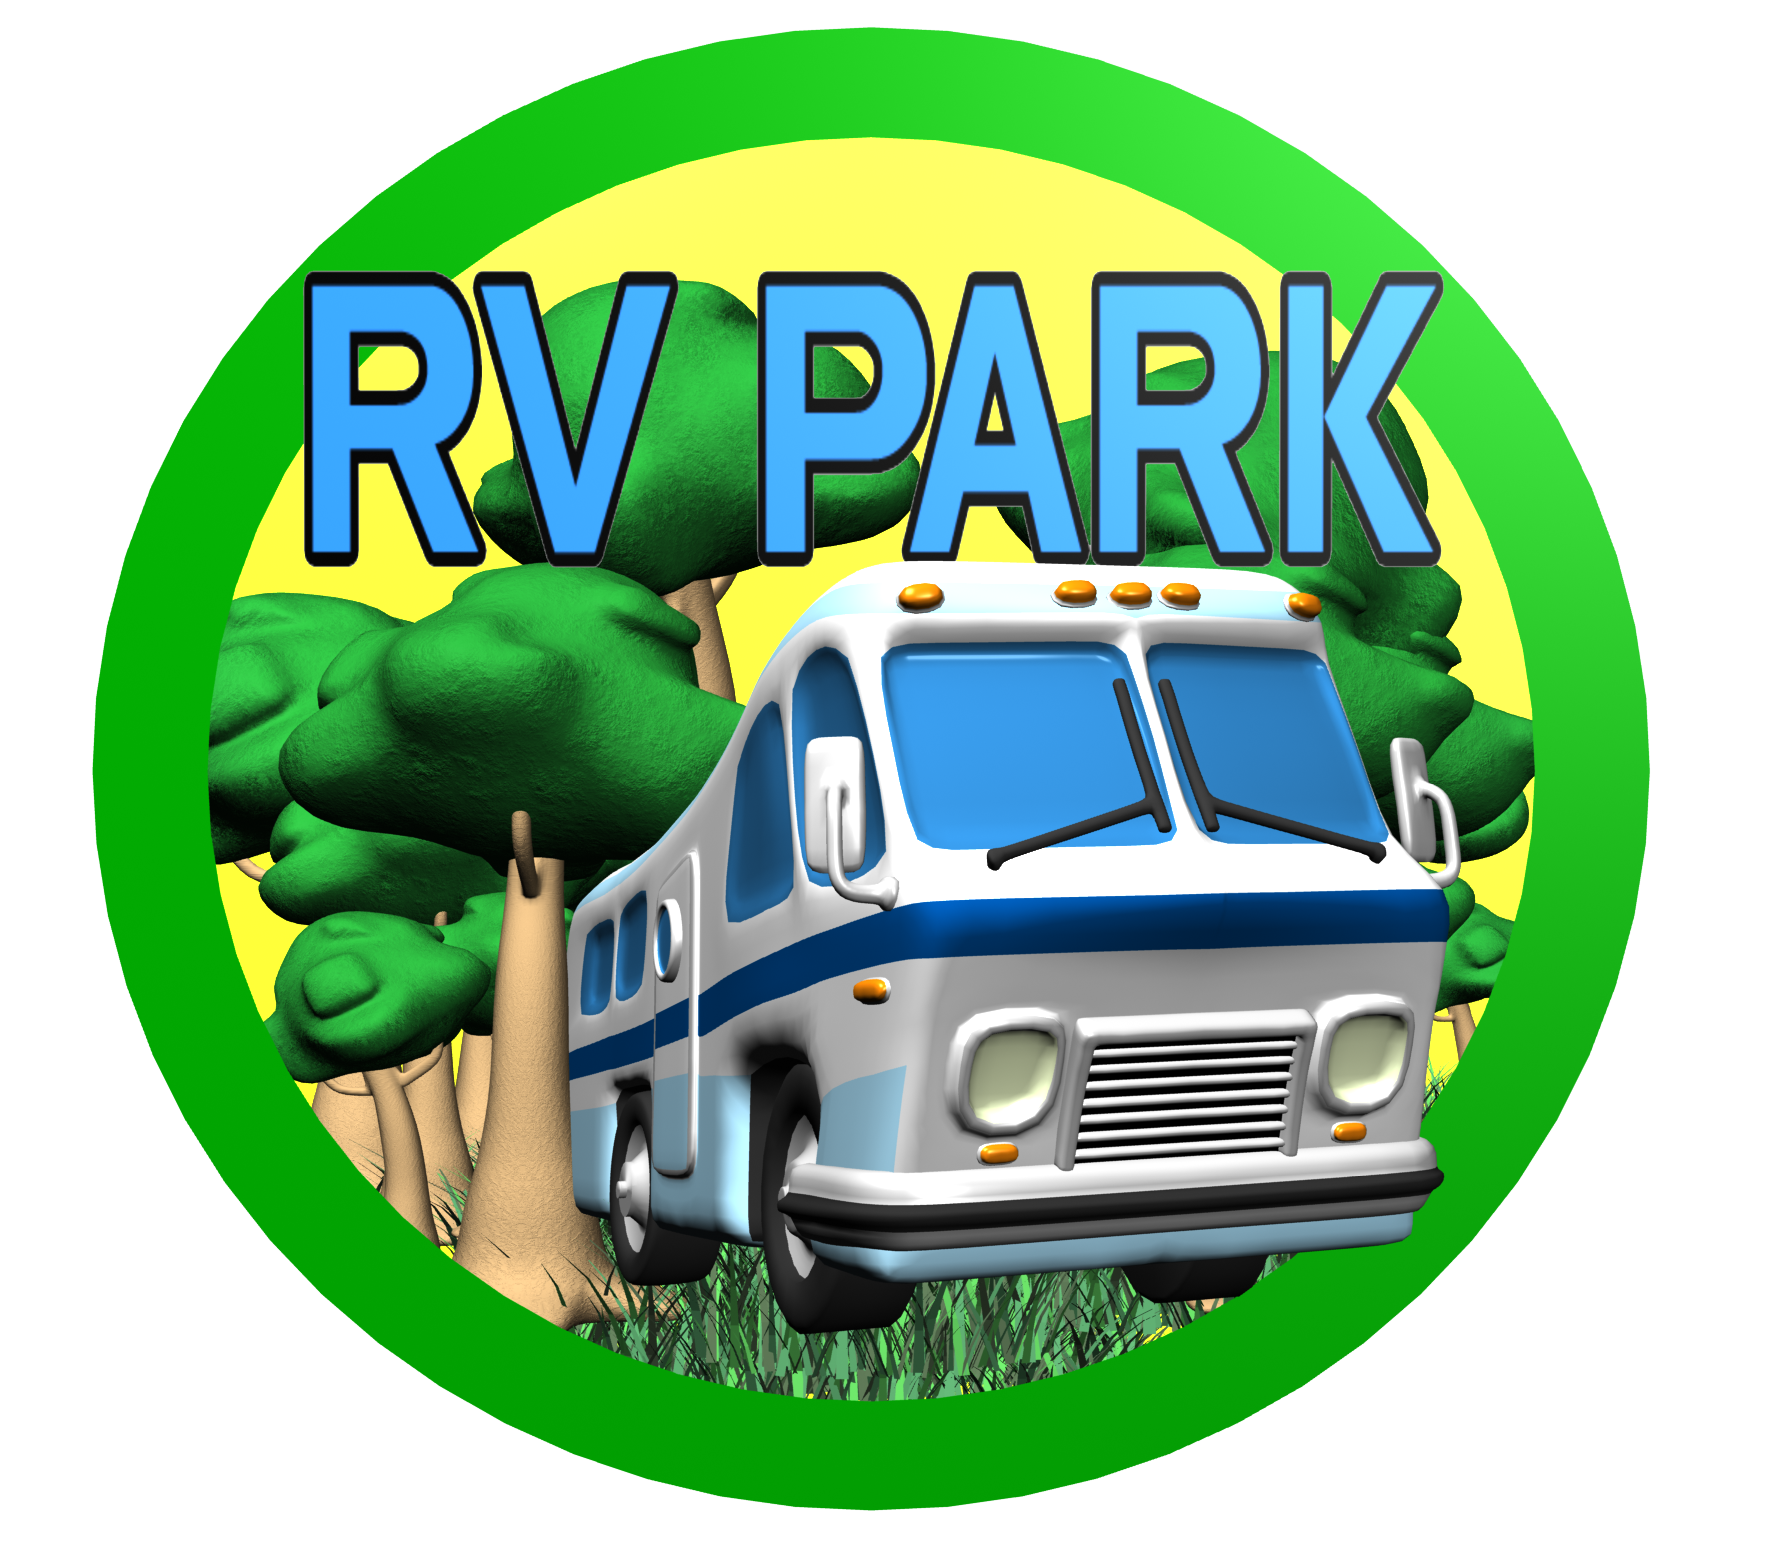 Camping car clipart vector library download Park Rv Camping Clipart vector library download